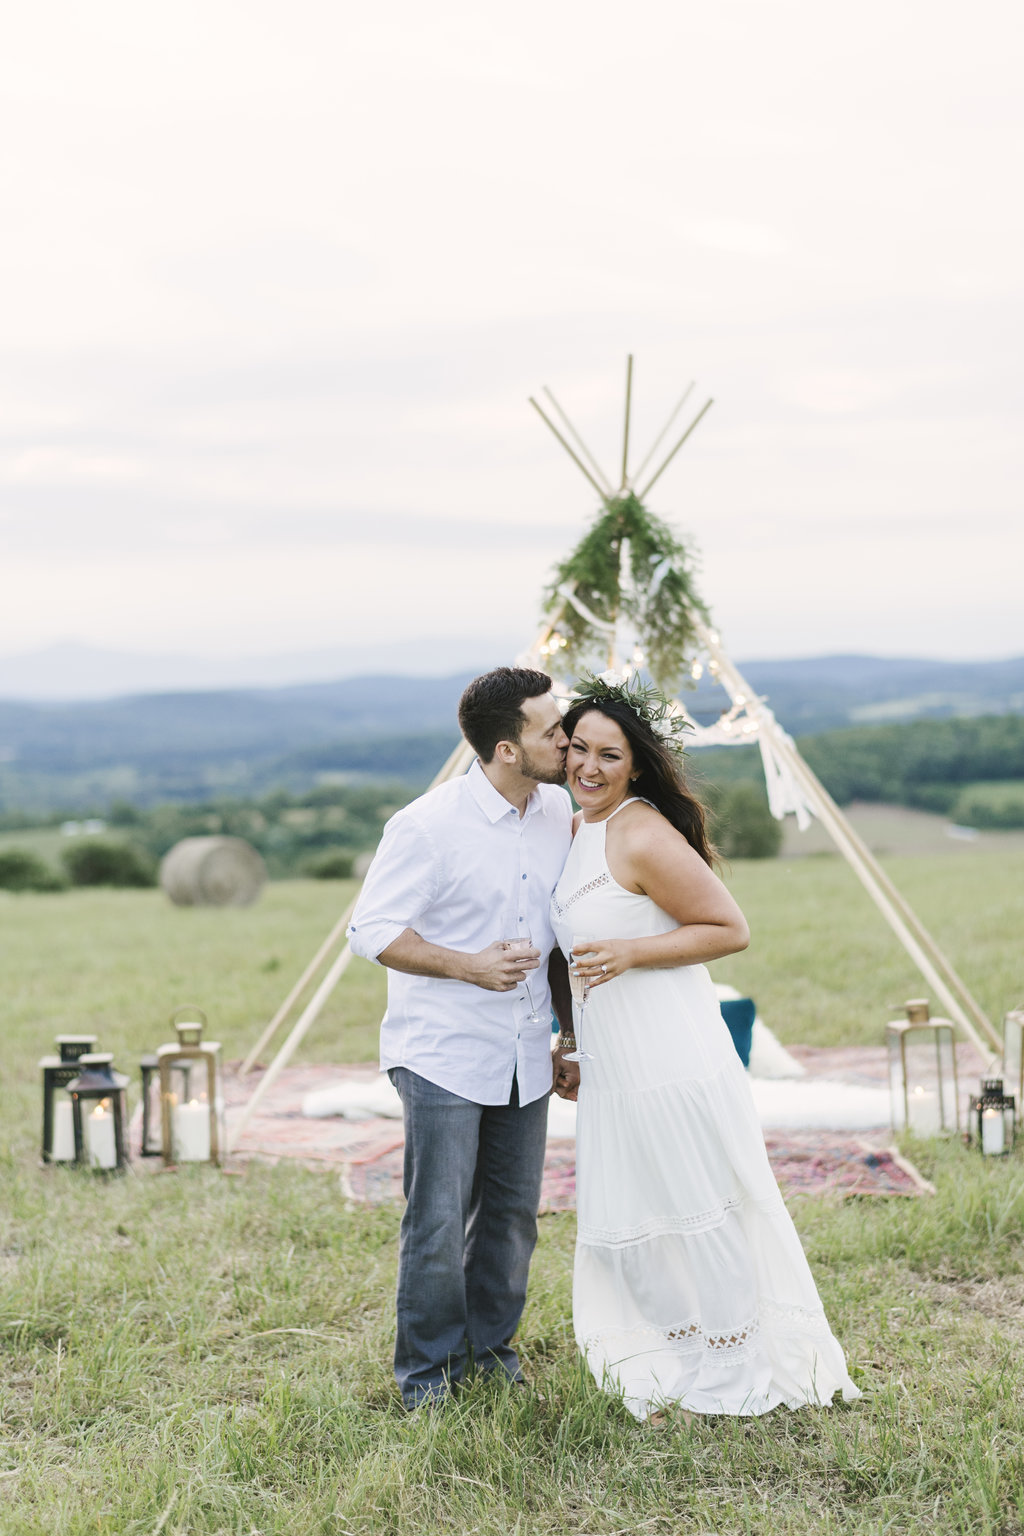 Monice-Relyea-events-alicia-king-photography-amanda-matt-engangement-globe-hill27